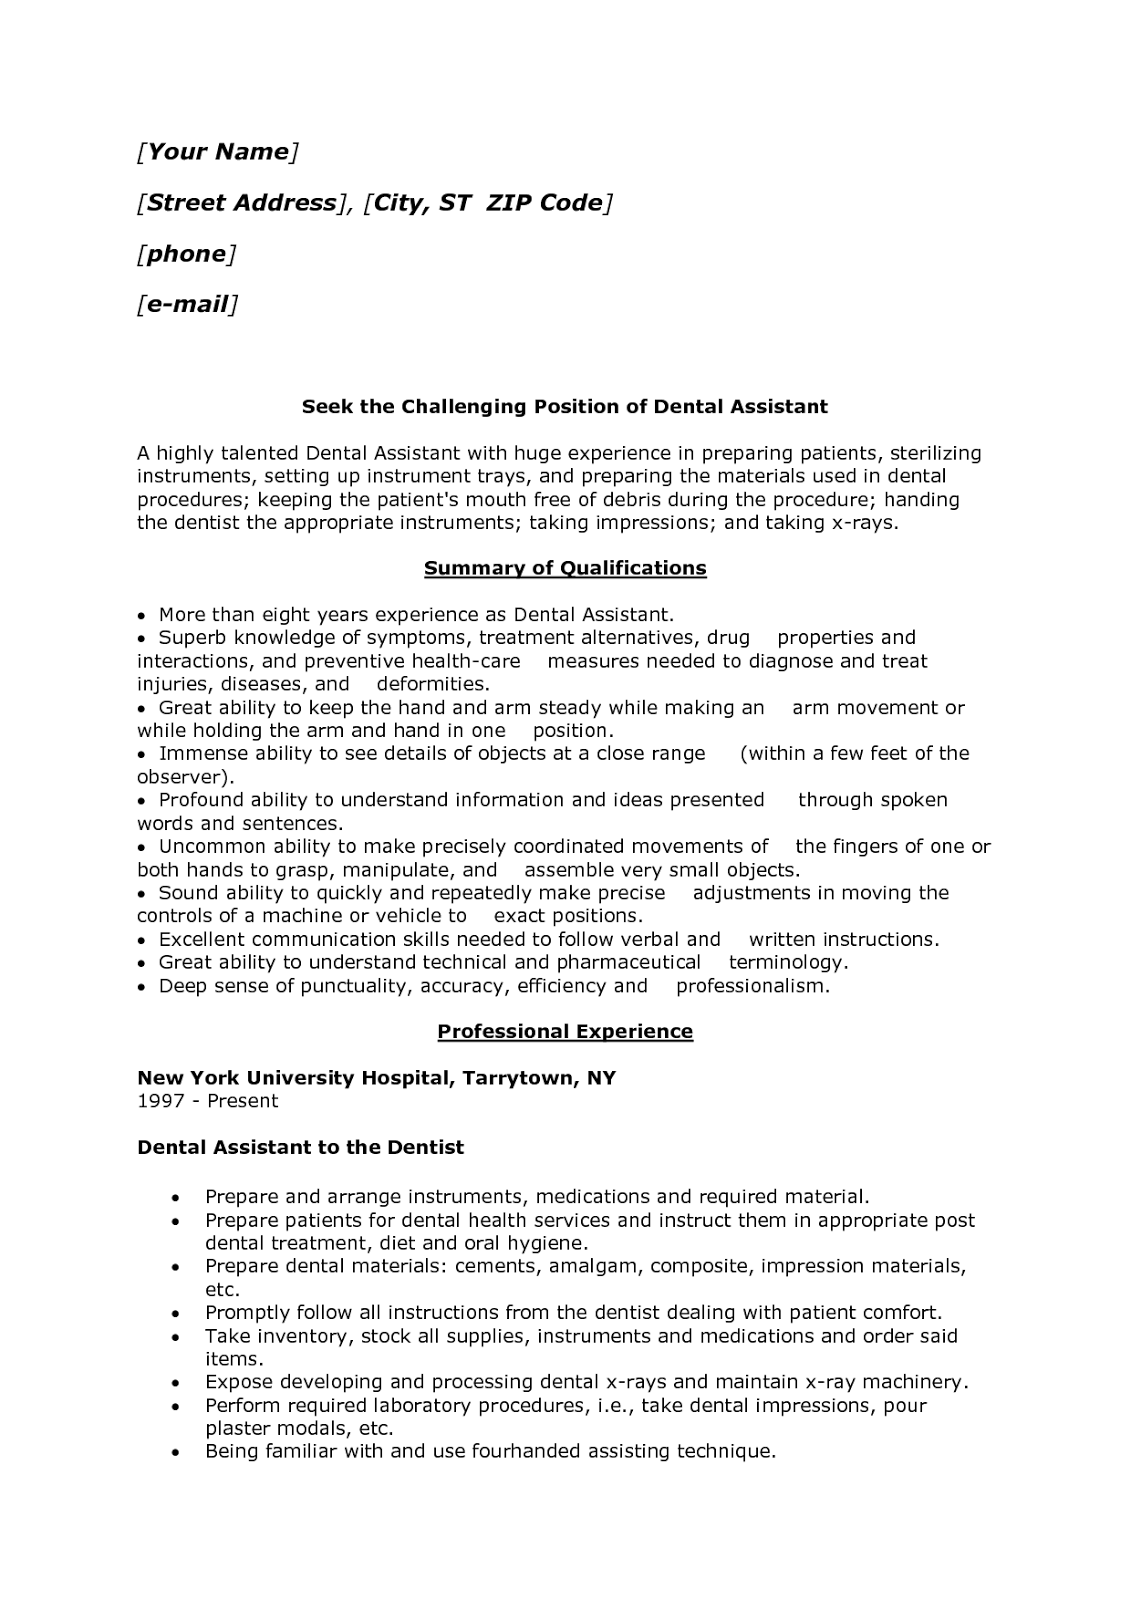 Sample Of A Dental Assistant Resume Entry Level 42